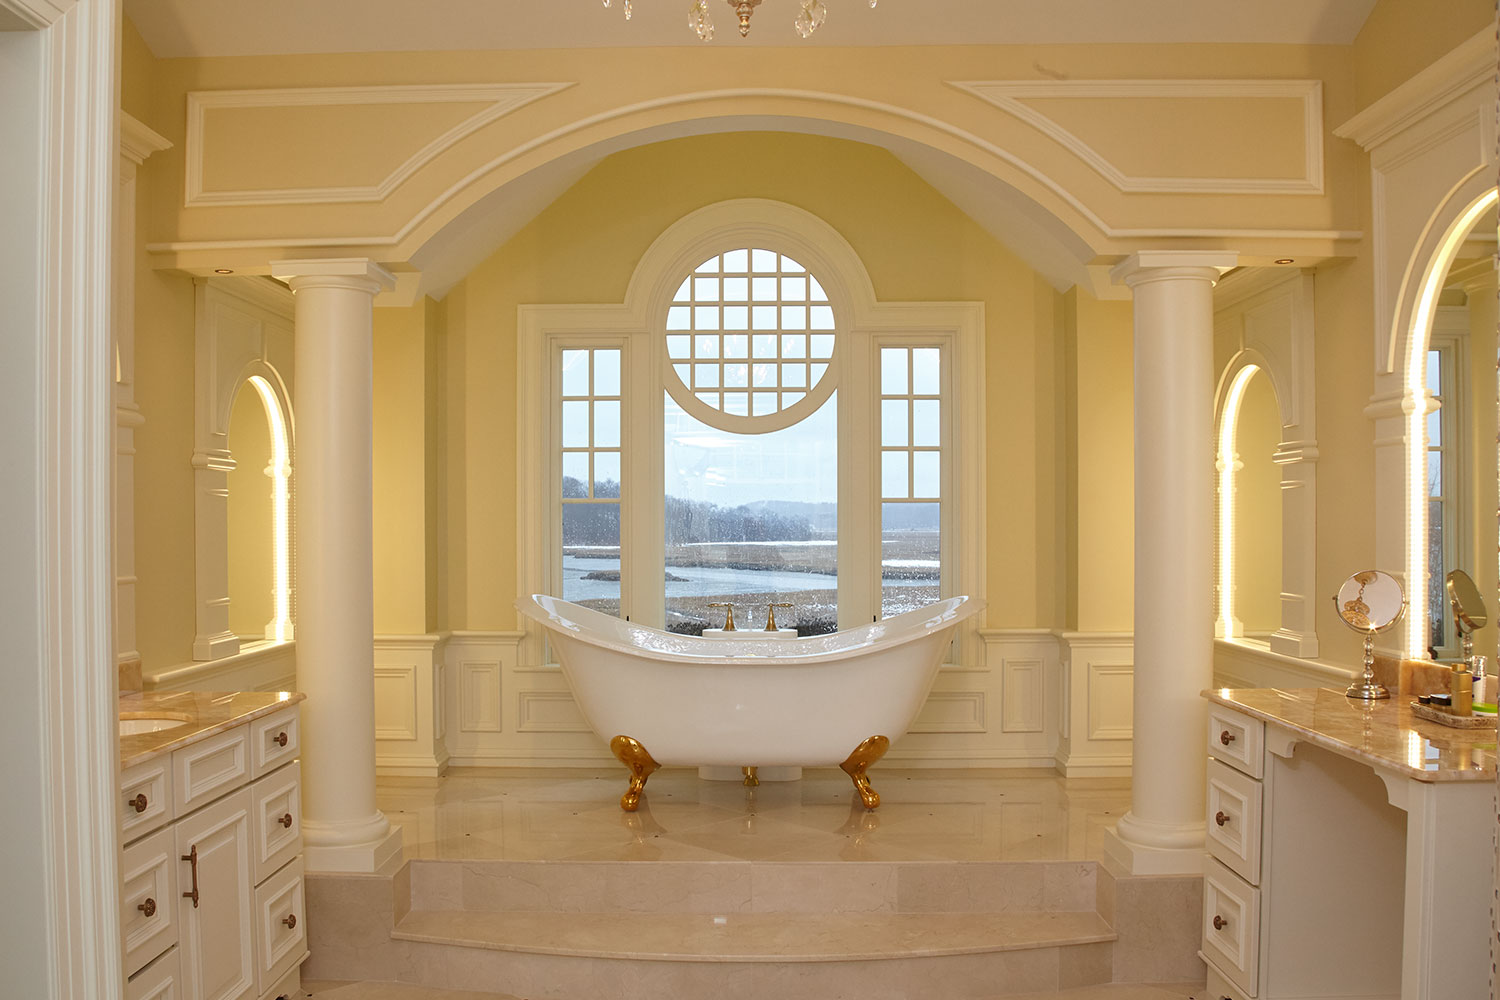 Bath Overlooking Window